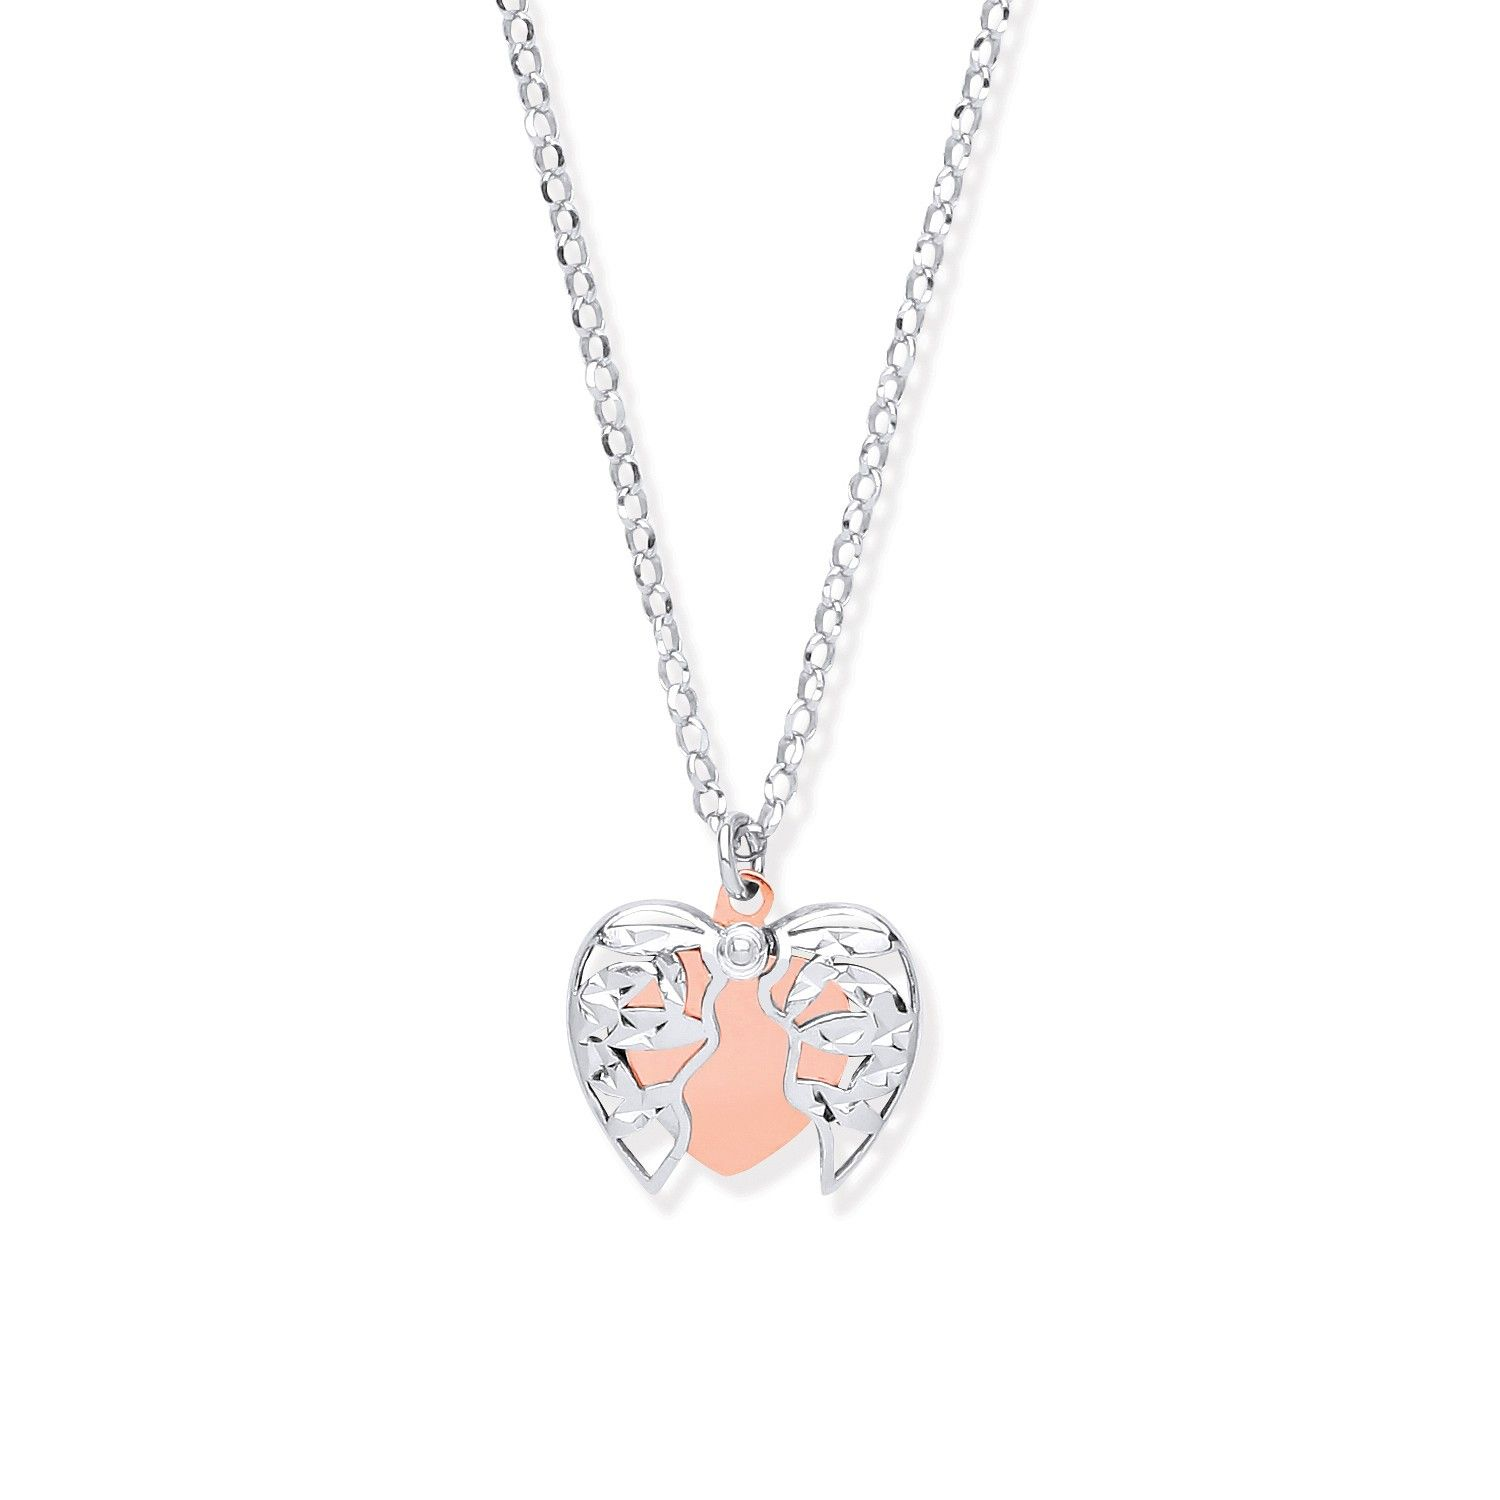 Silver with Rose Gold Plated Heart 18